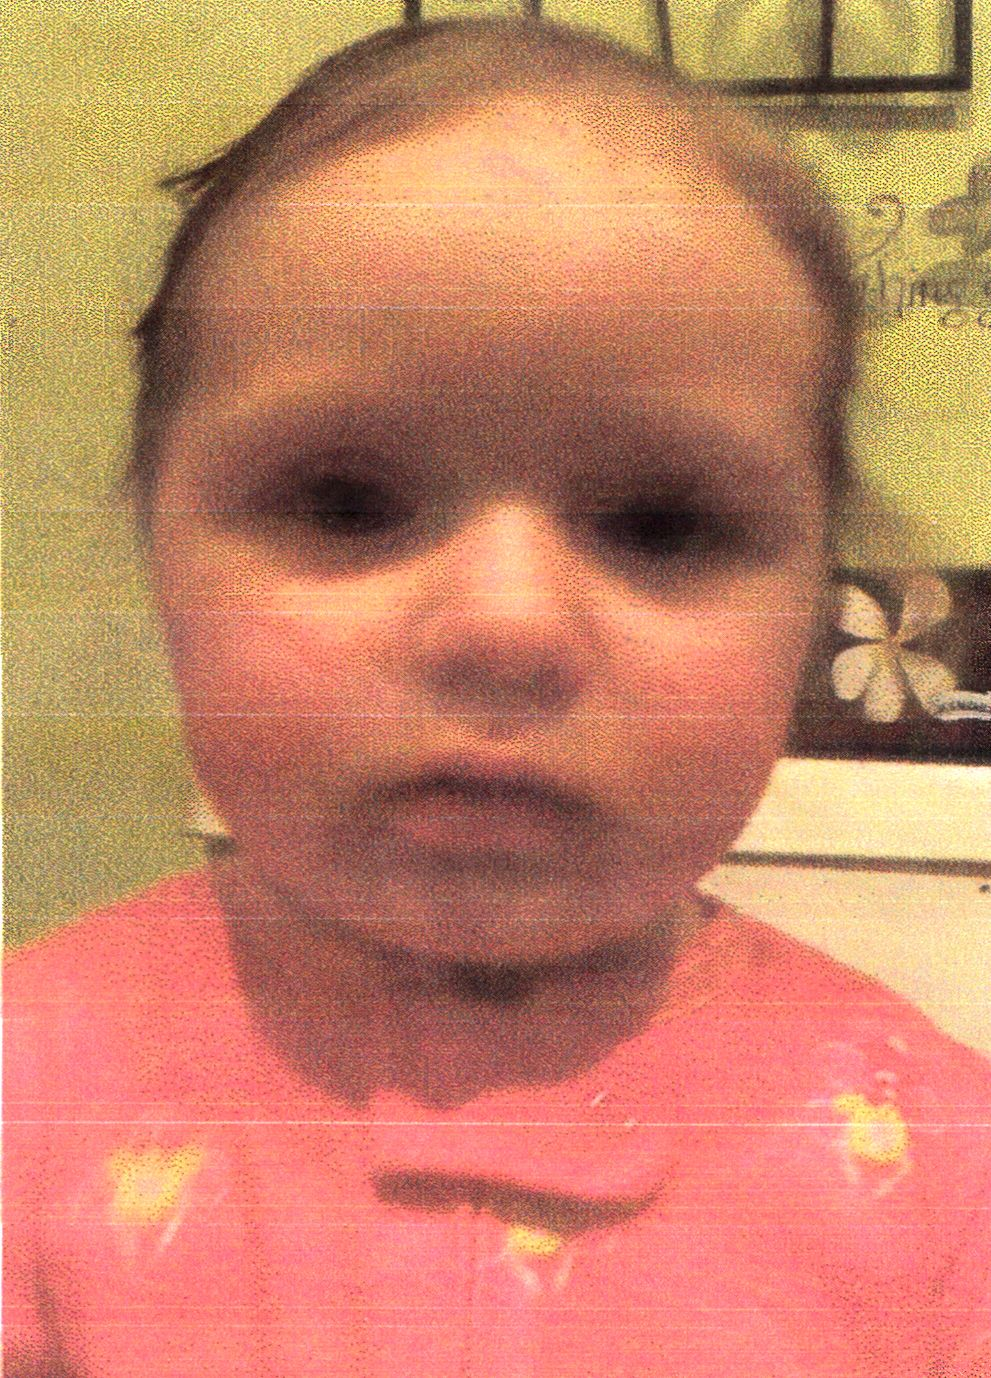 I still want to hope...Baby Elaina case now a homicide investigation - 13abc.com Toledo (OH) News, Weather and Sports